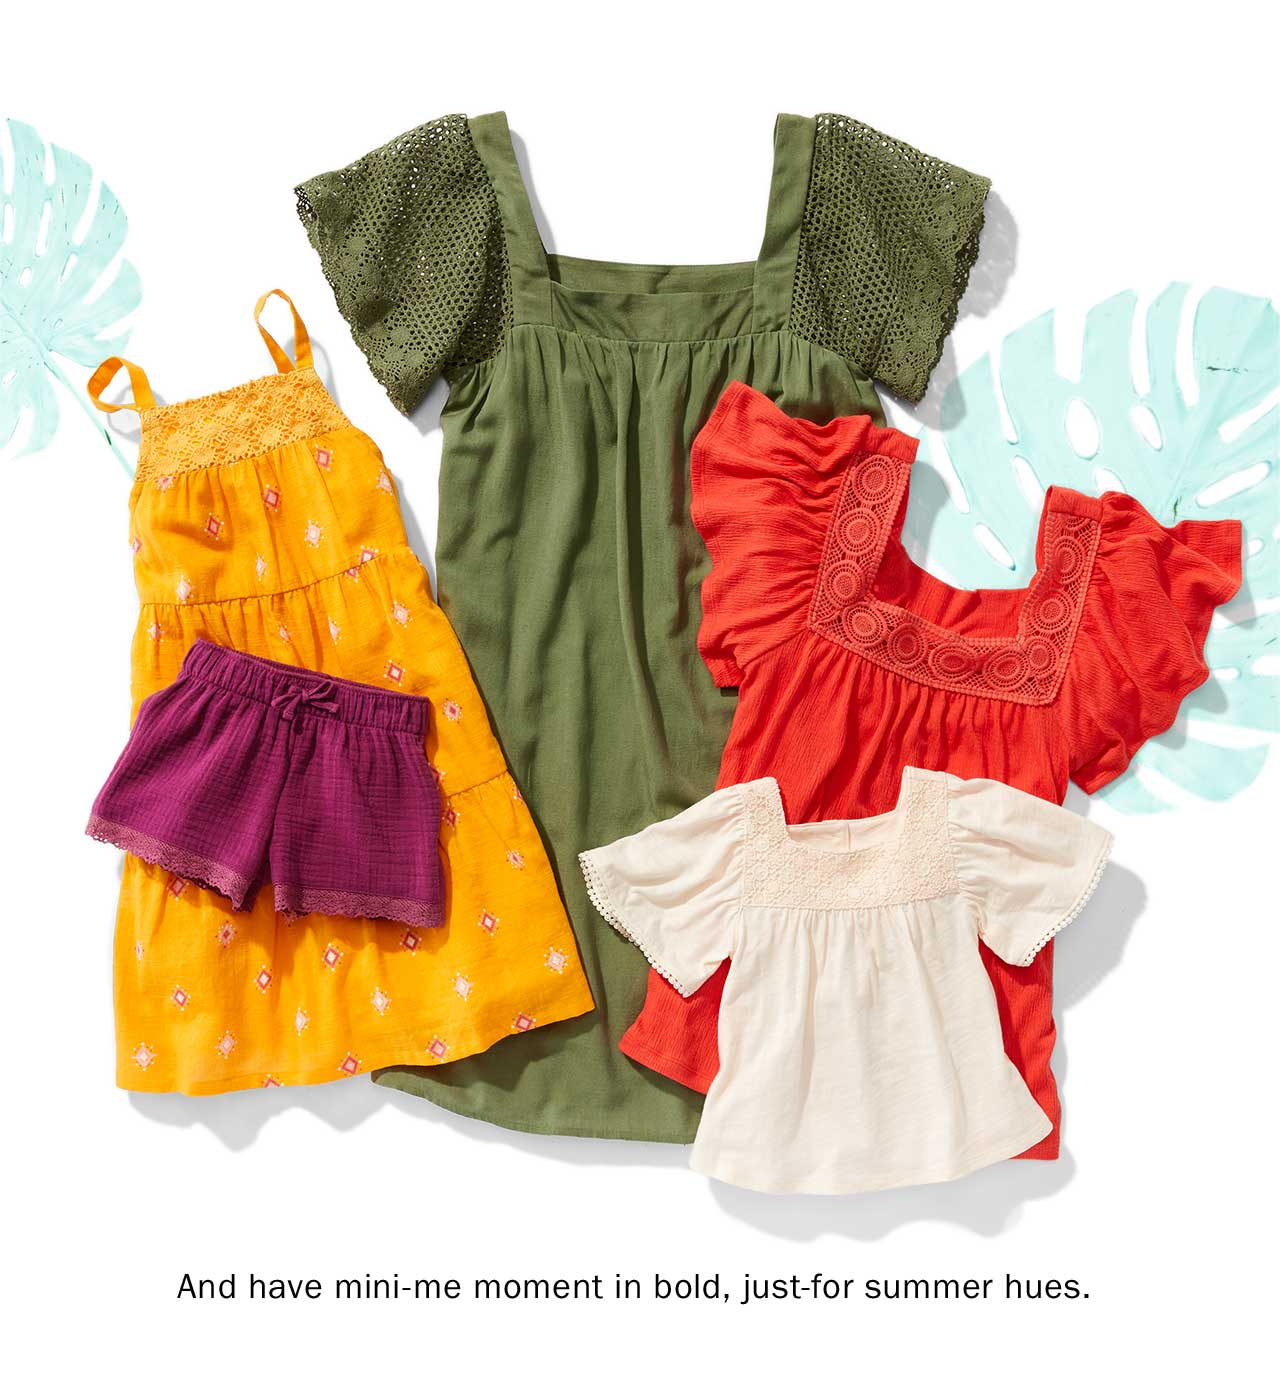 And have mini-me moment in bold, just-for summer hues.